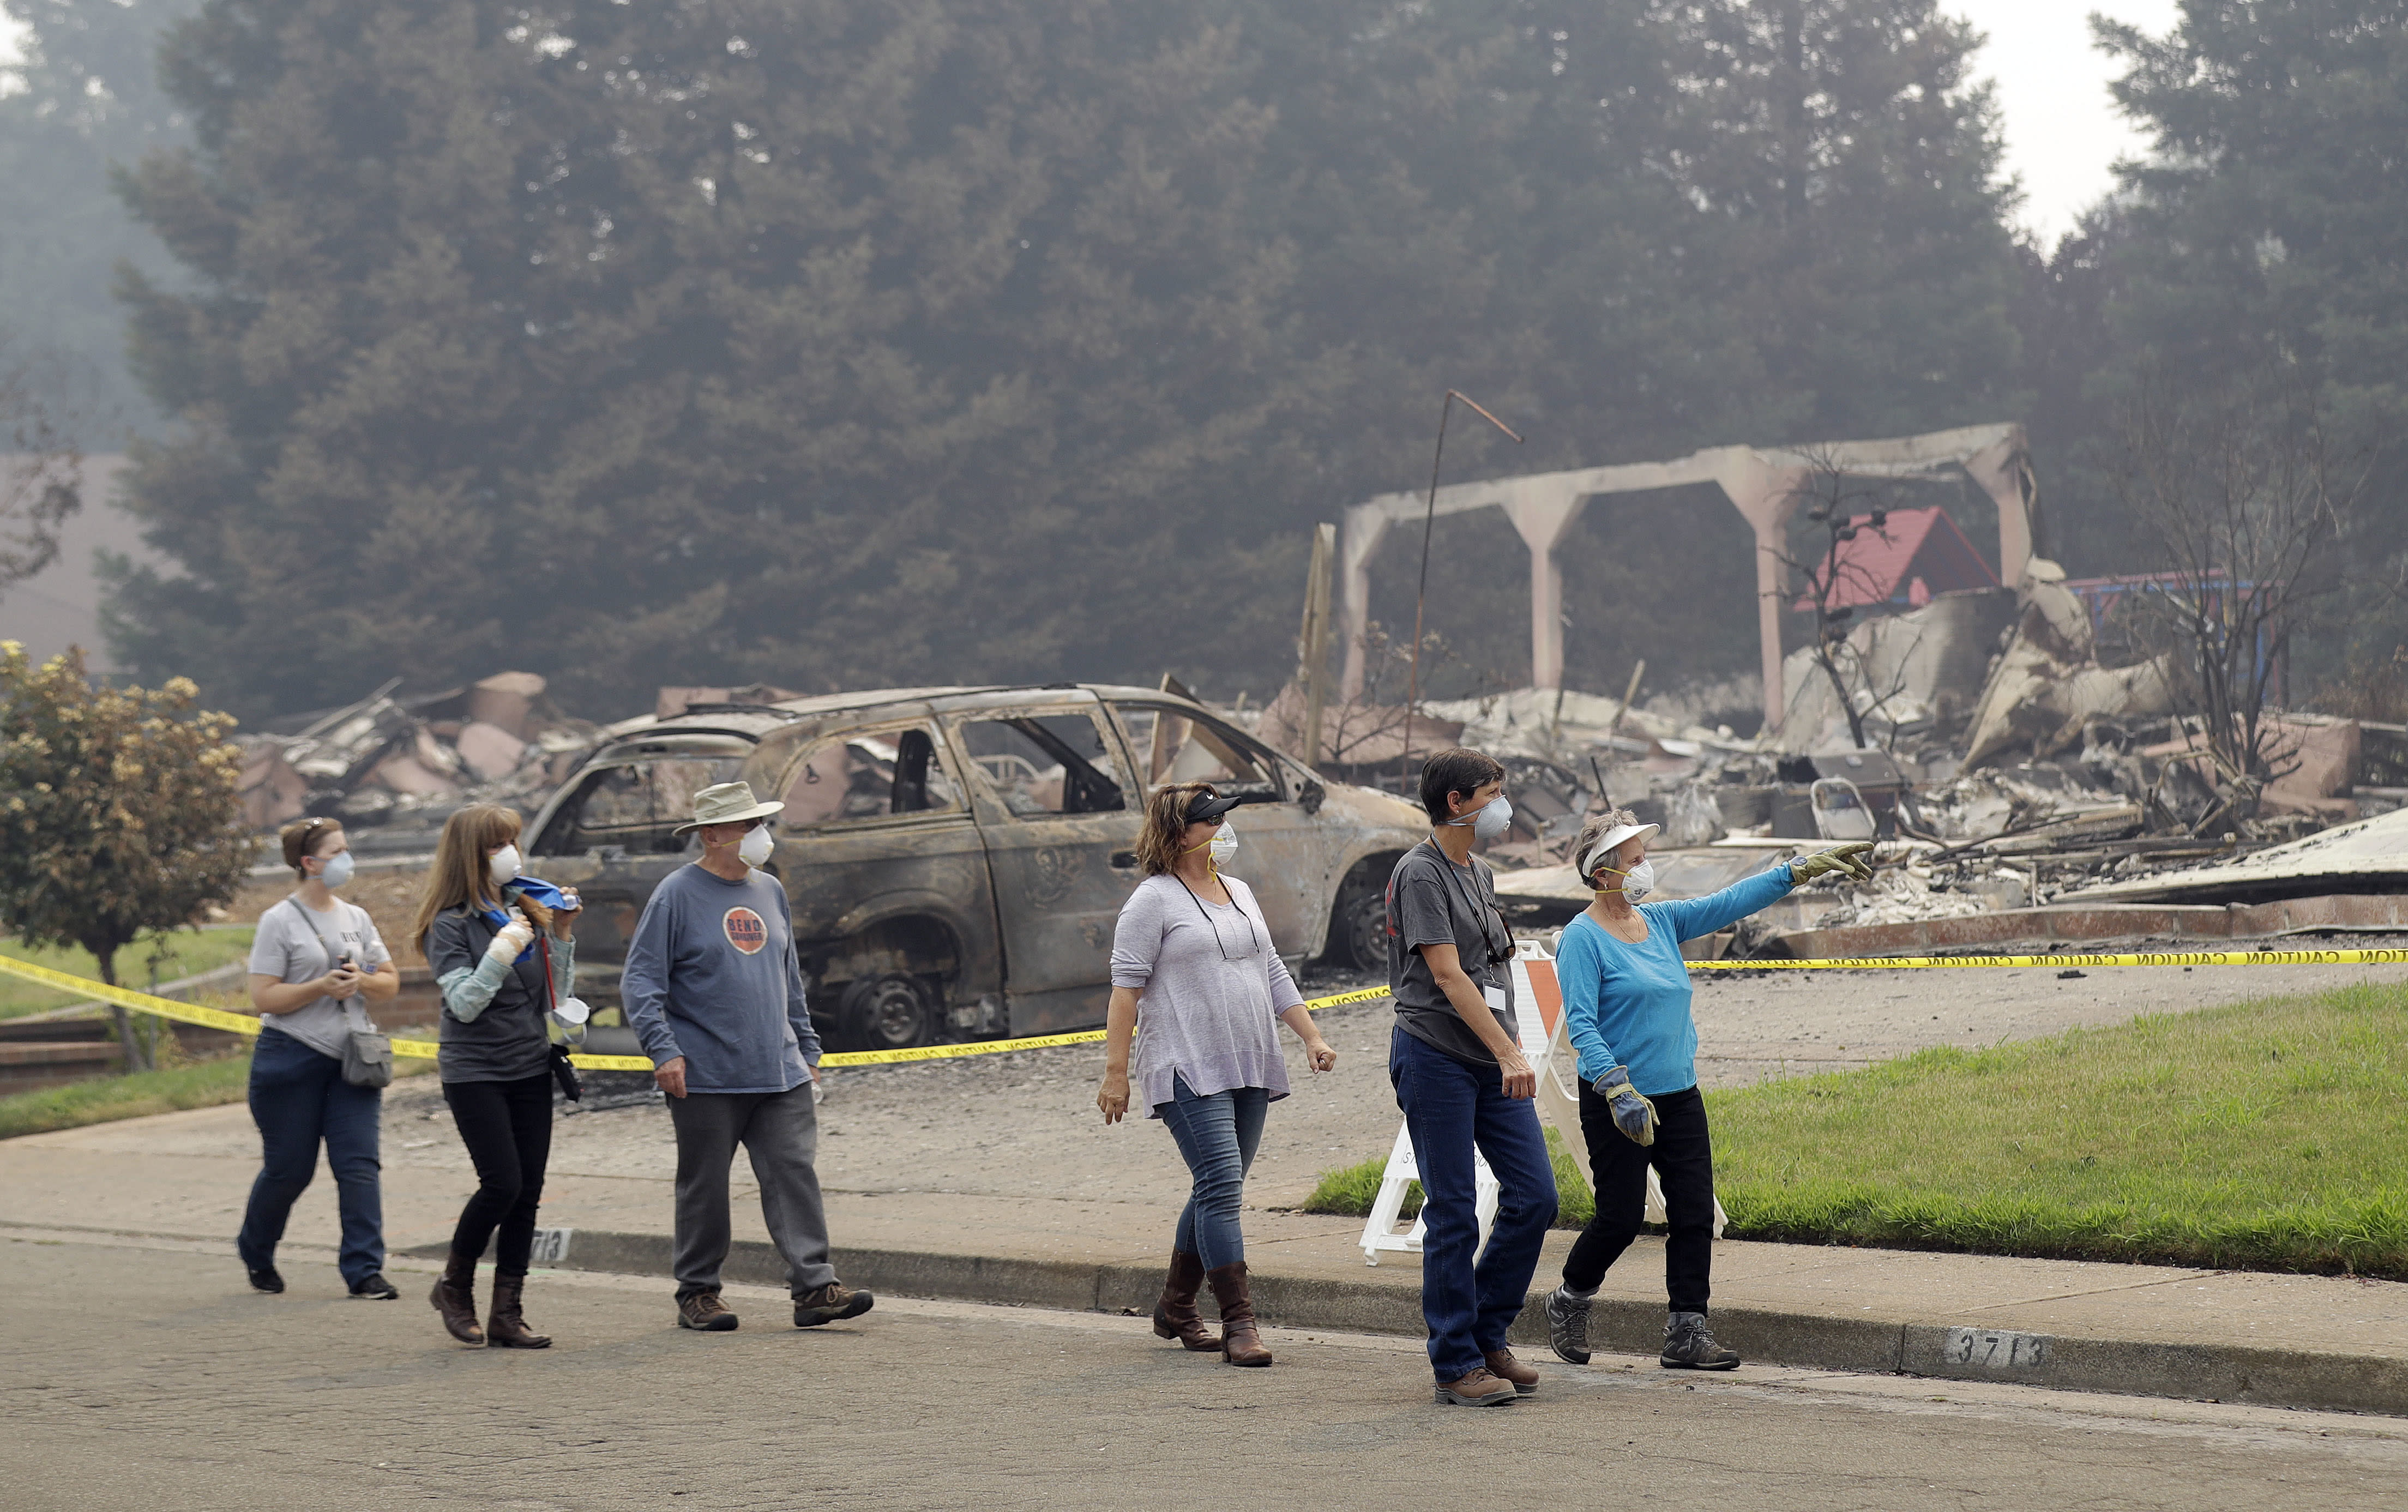 The Latest: New evacuations ordered for California wildfire